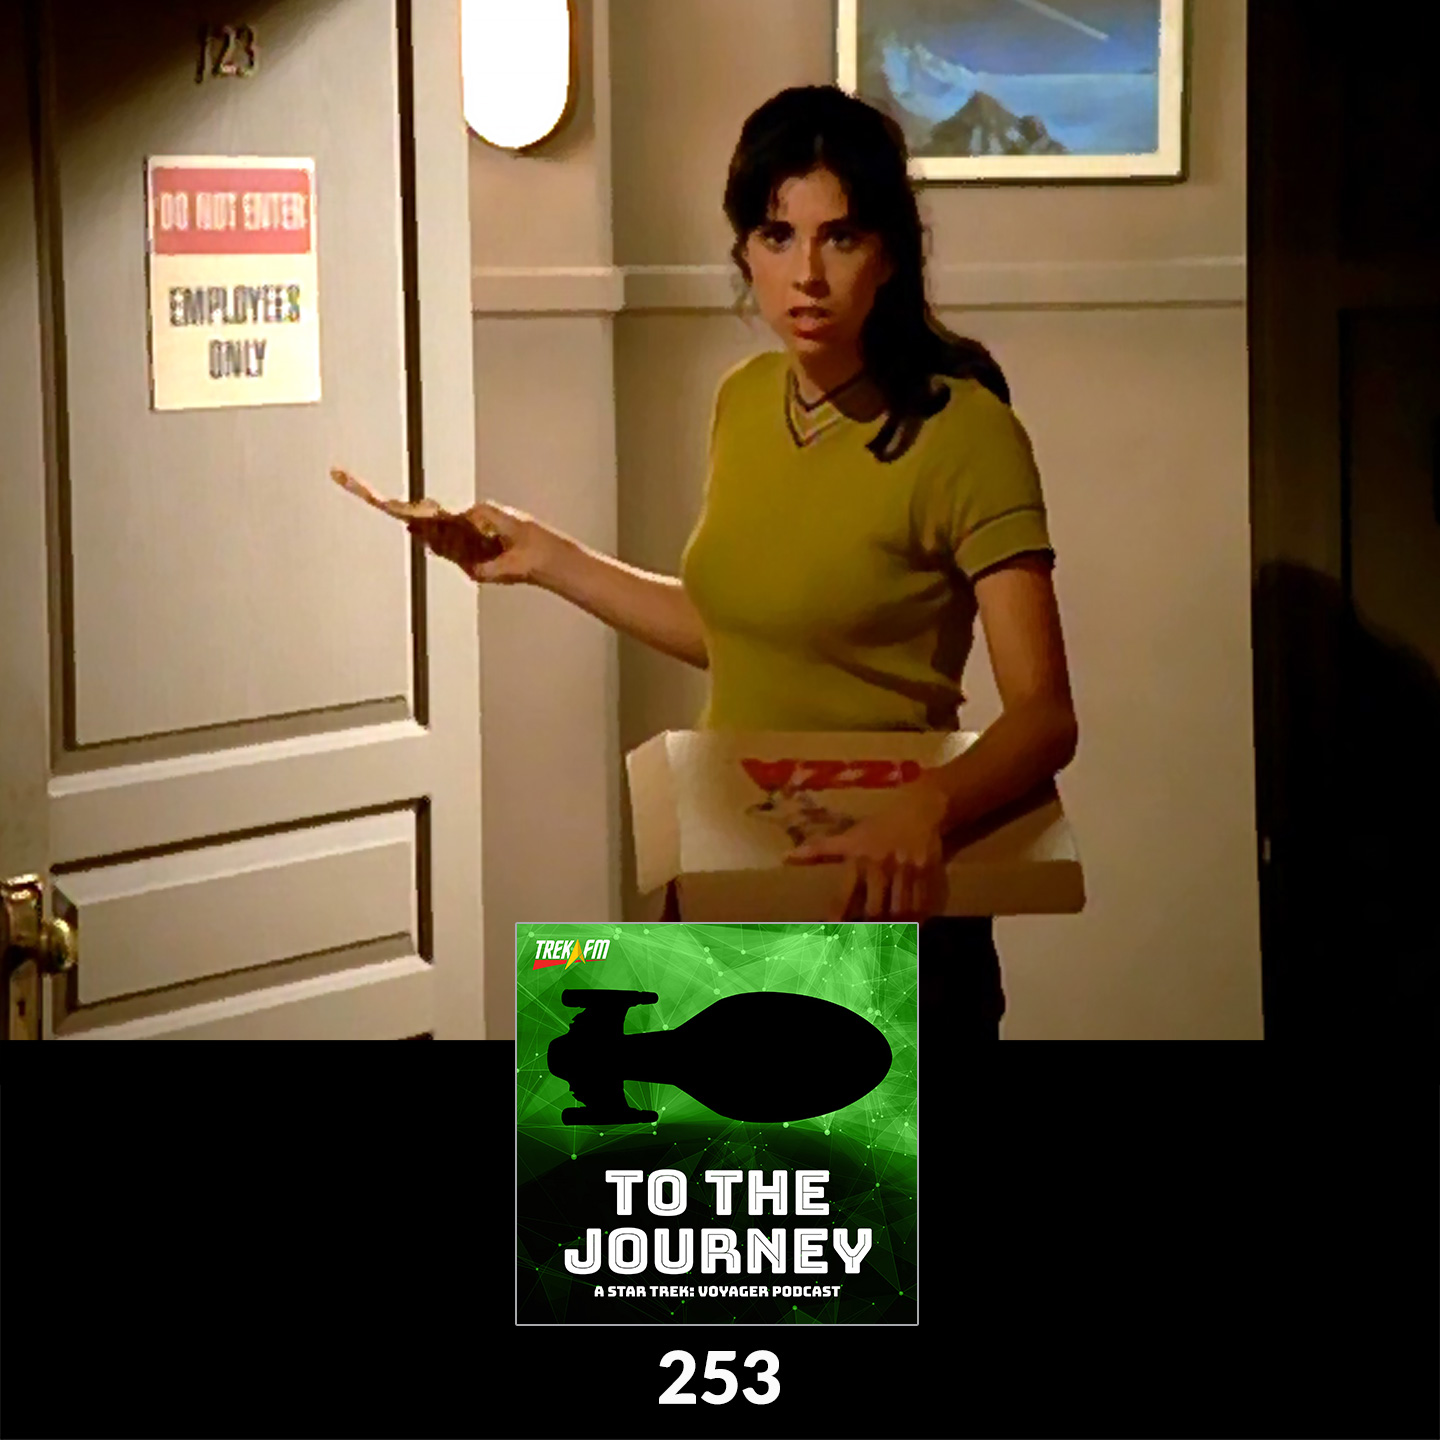 To The Journey 253: Retconning the 90s - Characters We Wanted More Of.